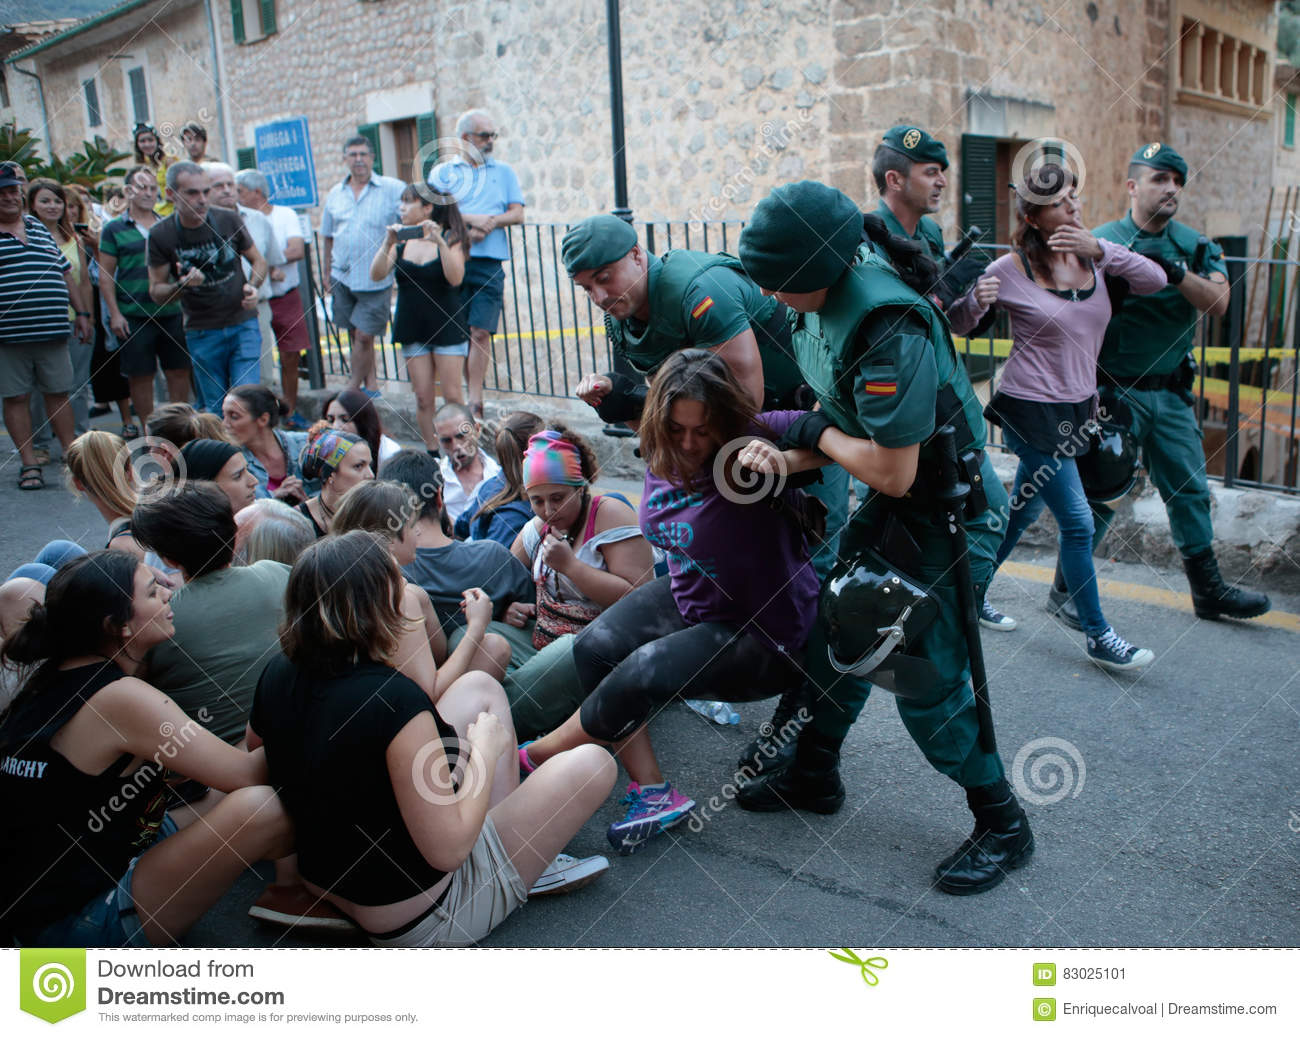 Police evicts a protest against a bull run in Mallorca.